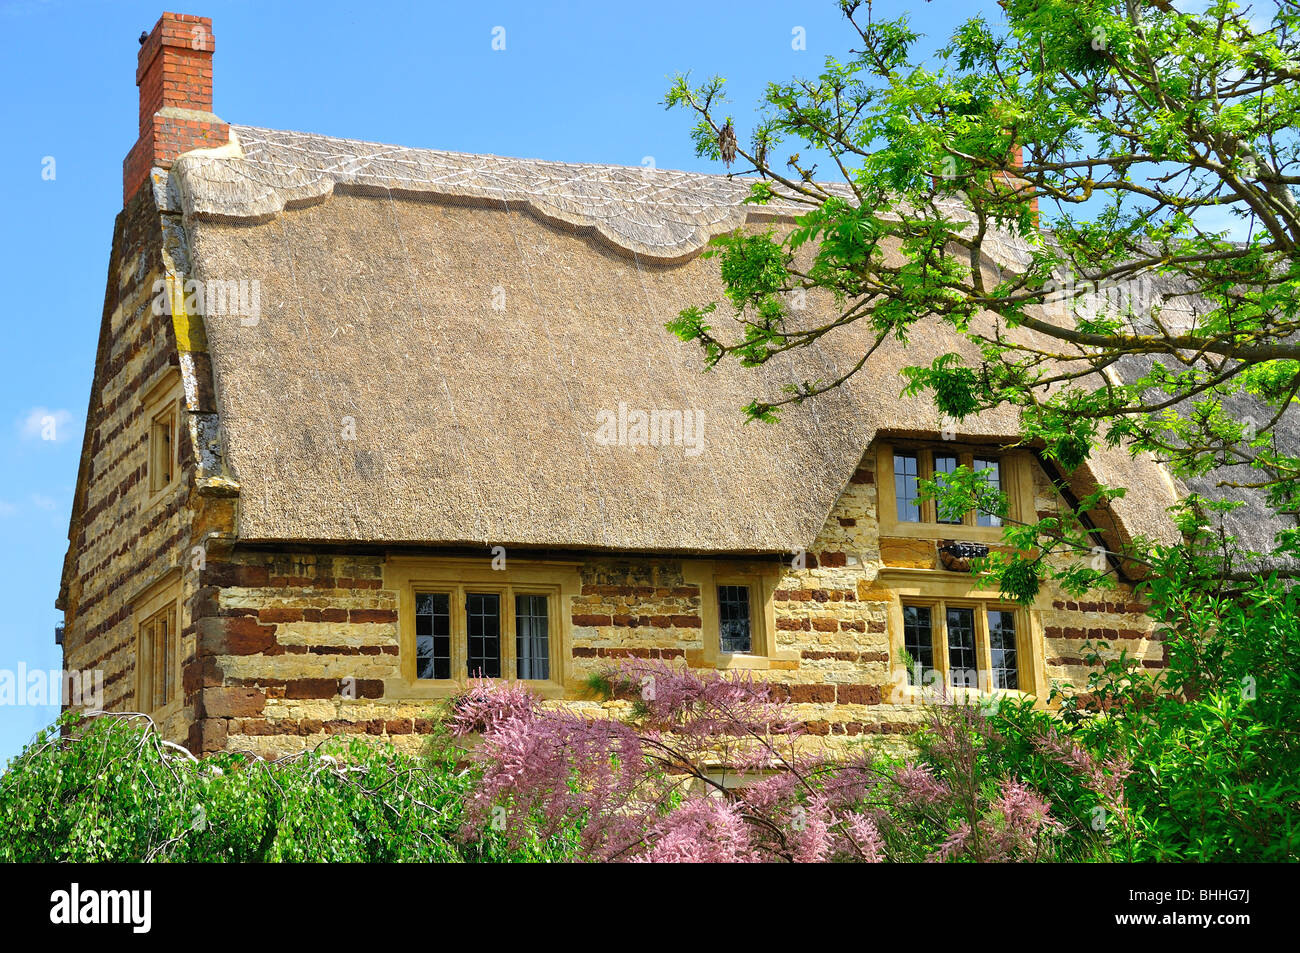 This is a traditionally built cottage located in the village of Blisworth, in Northamptonshire, UK Stock Photo